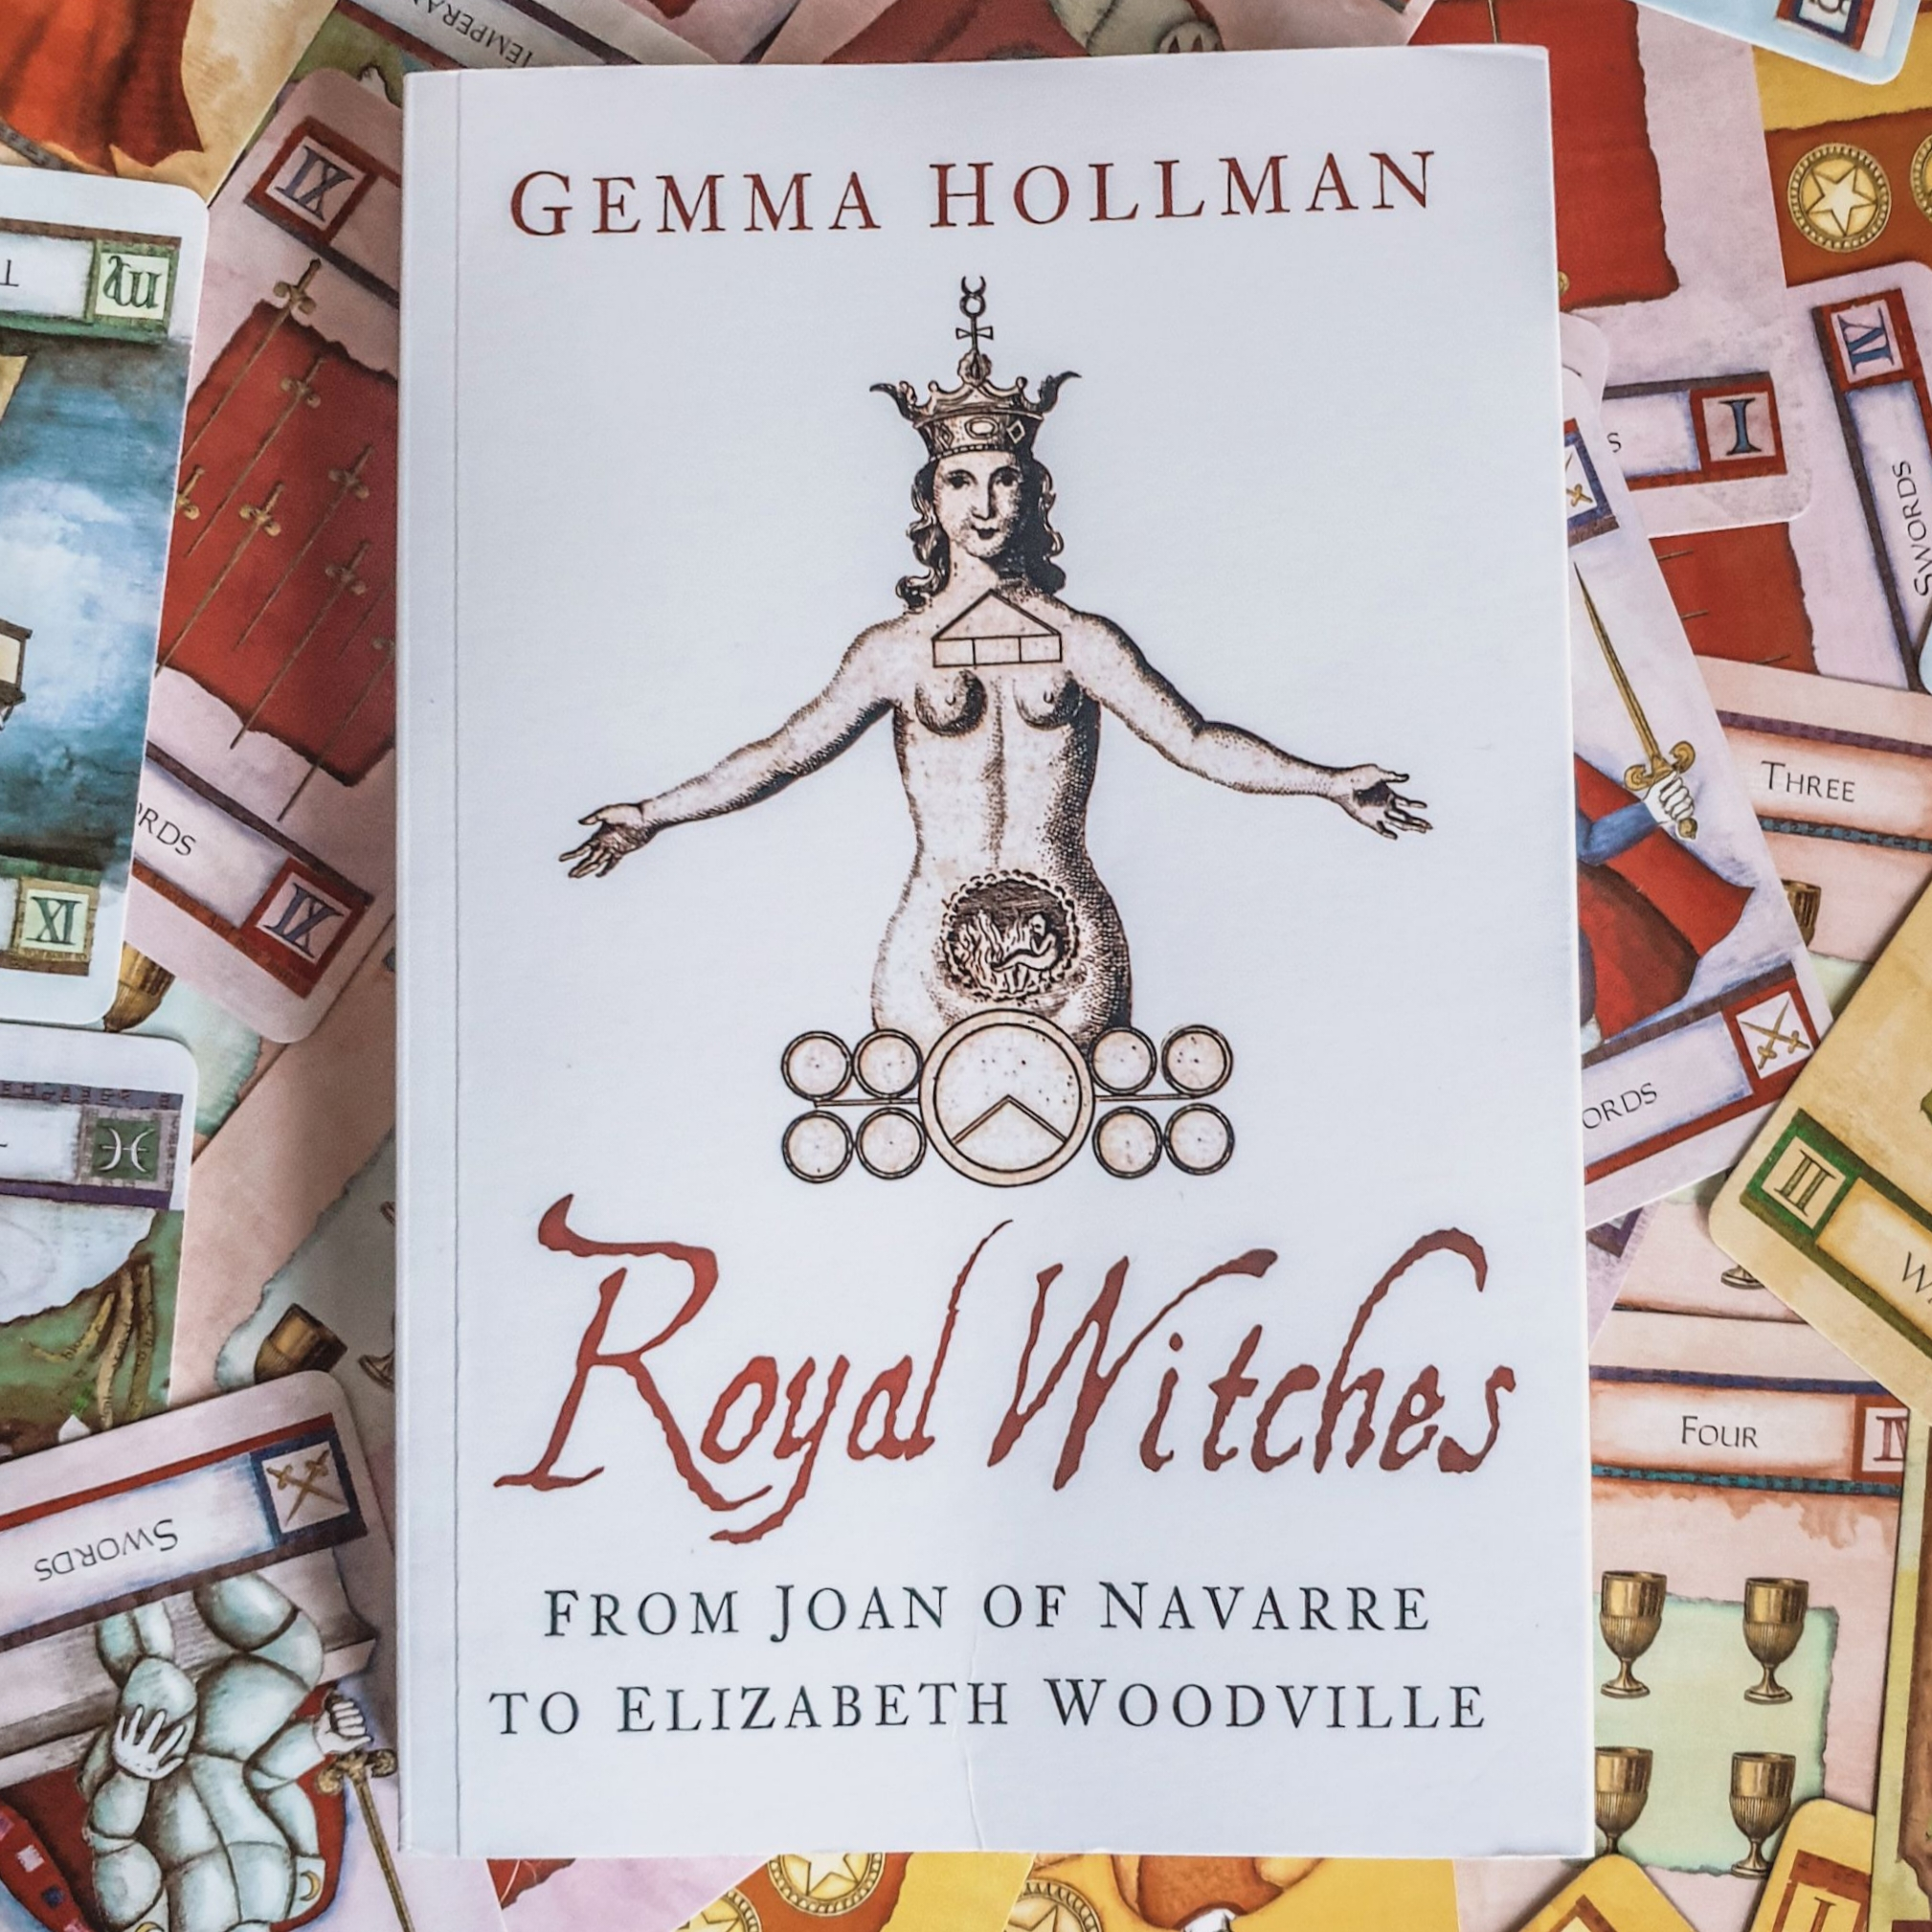 Royal witches review